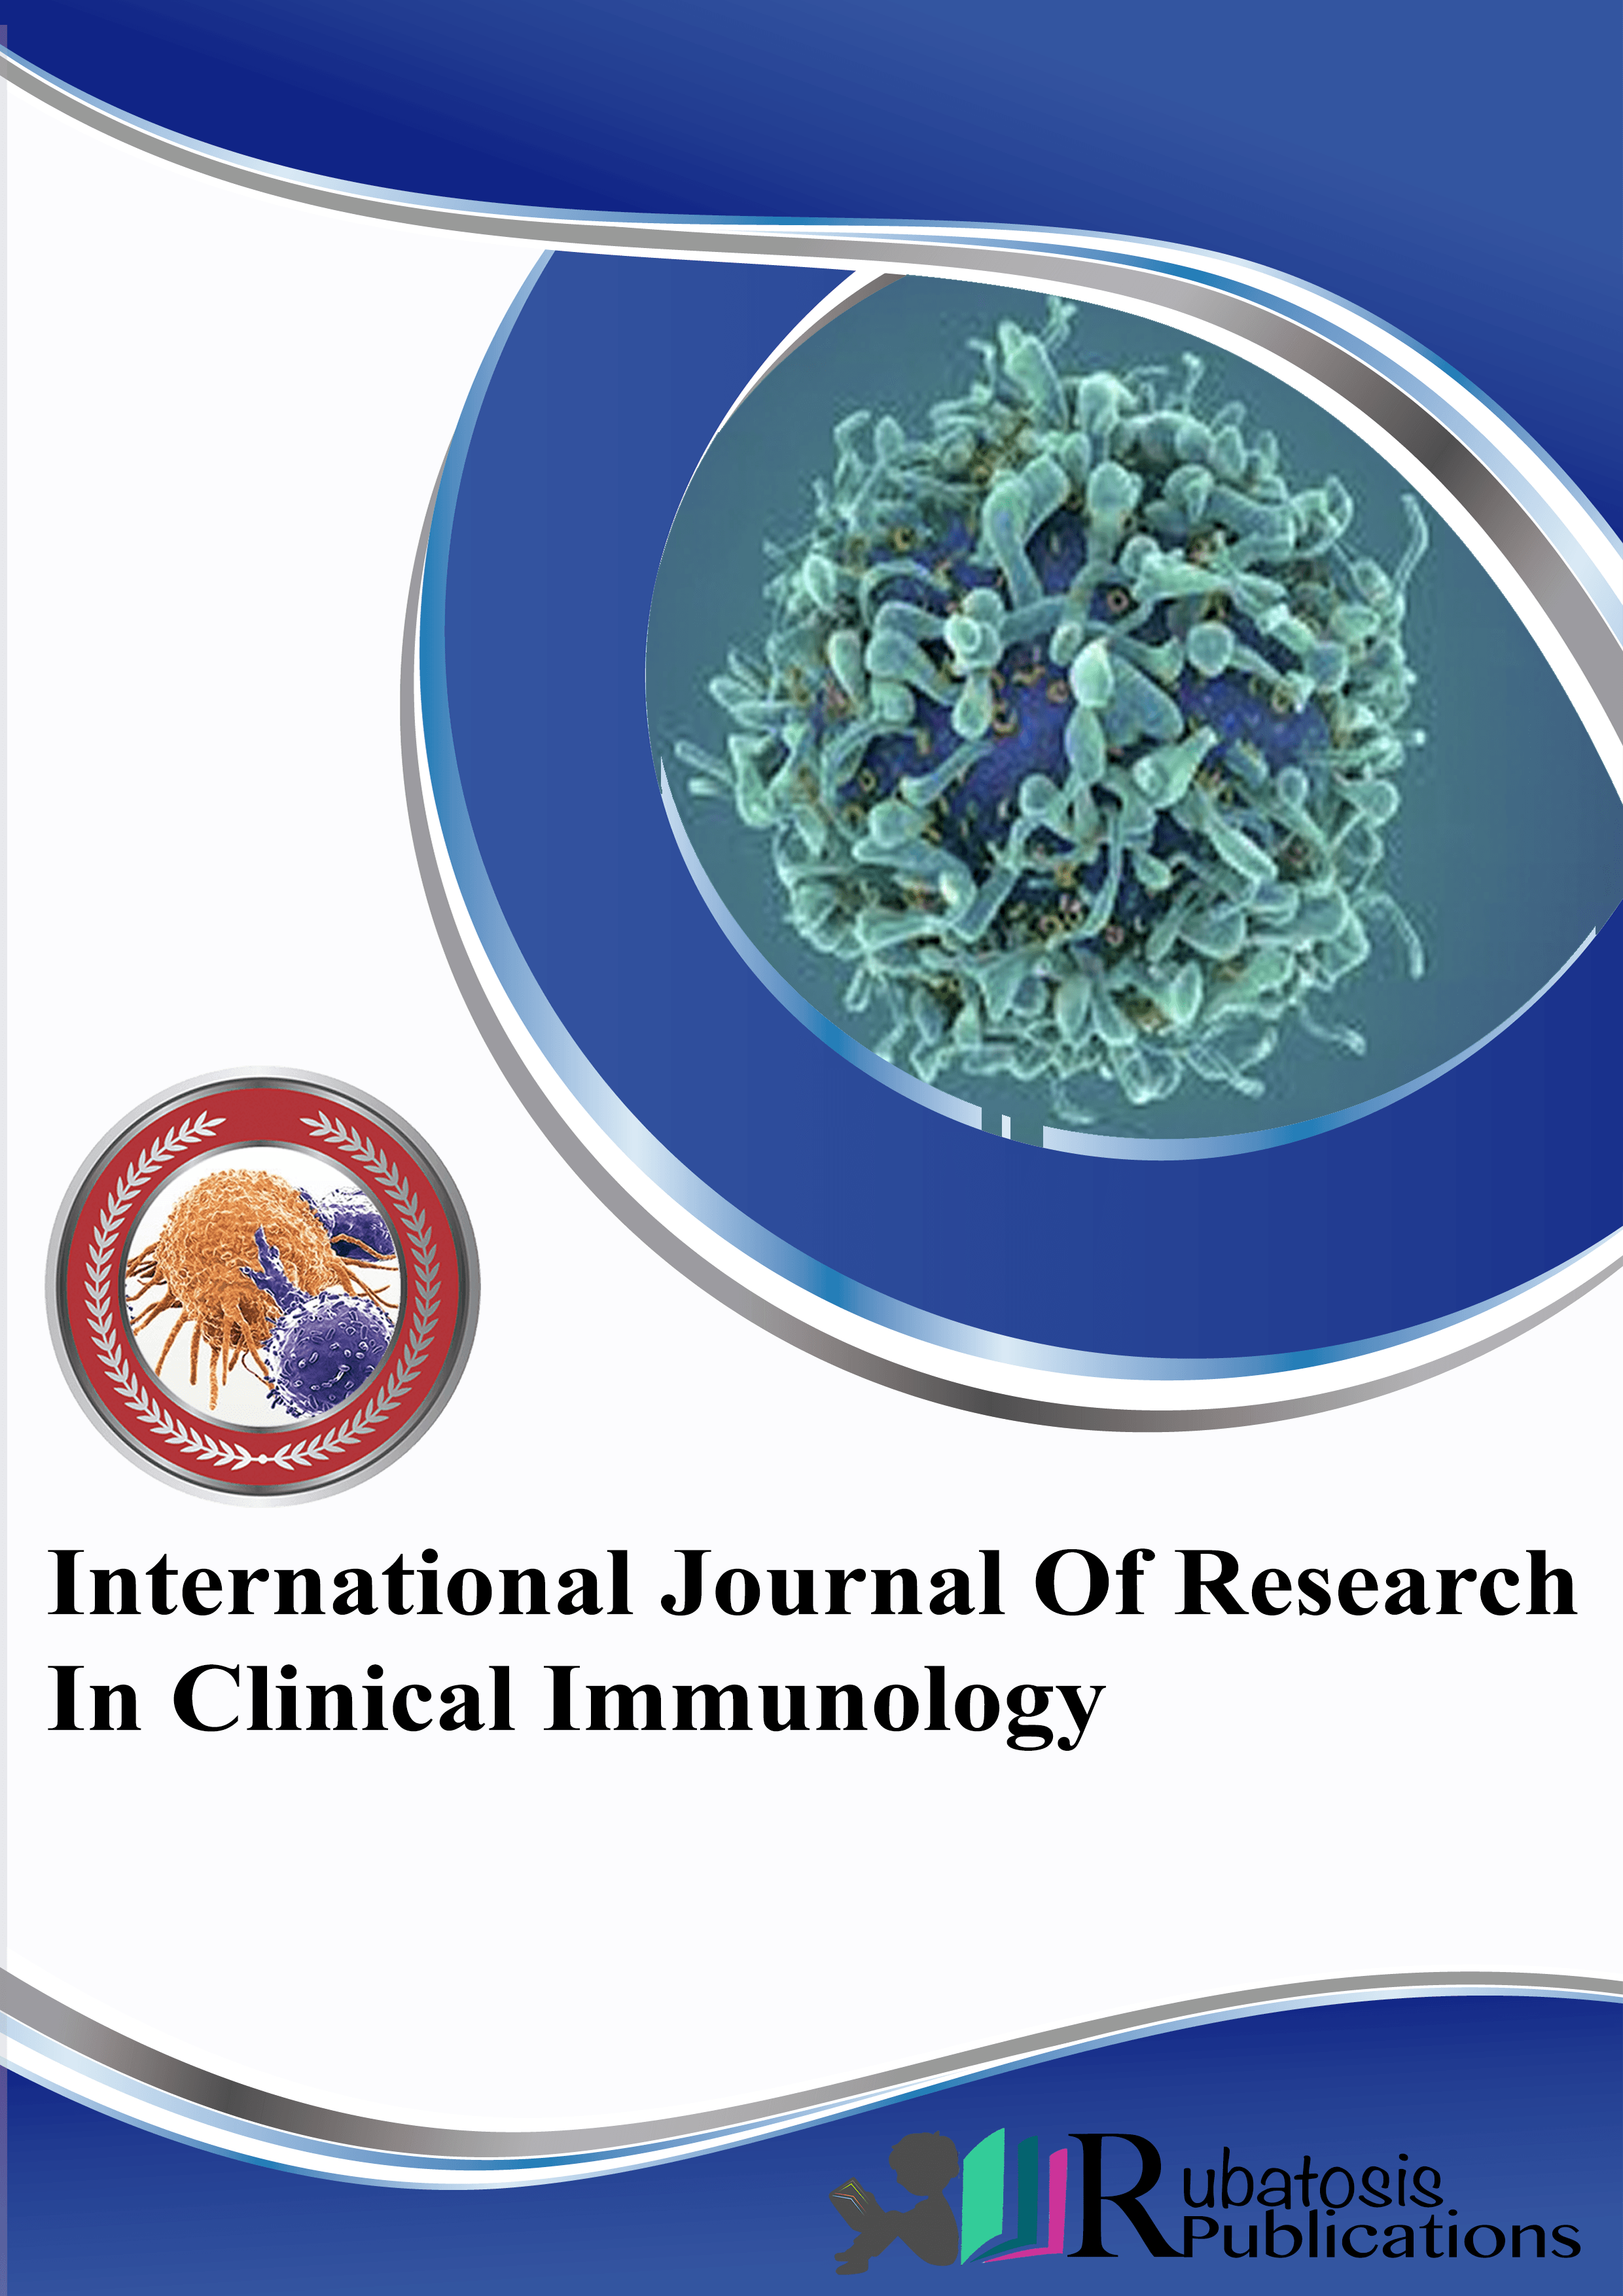 International Journal Of Research In Clinical Immunology